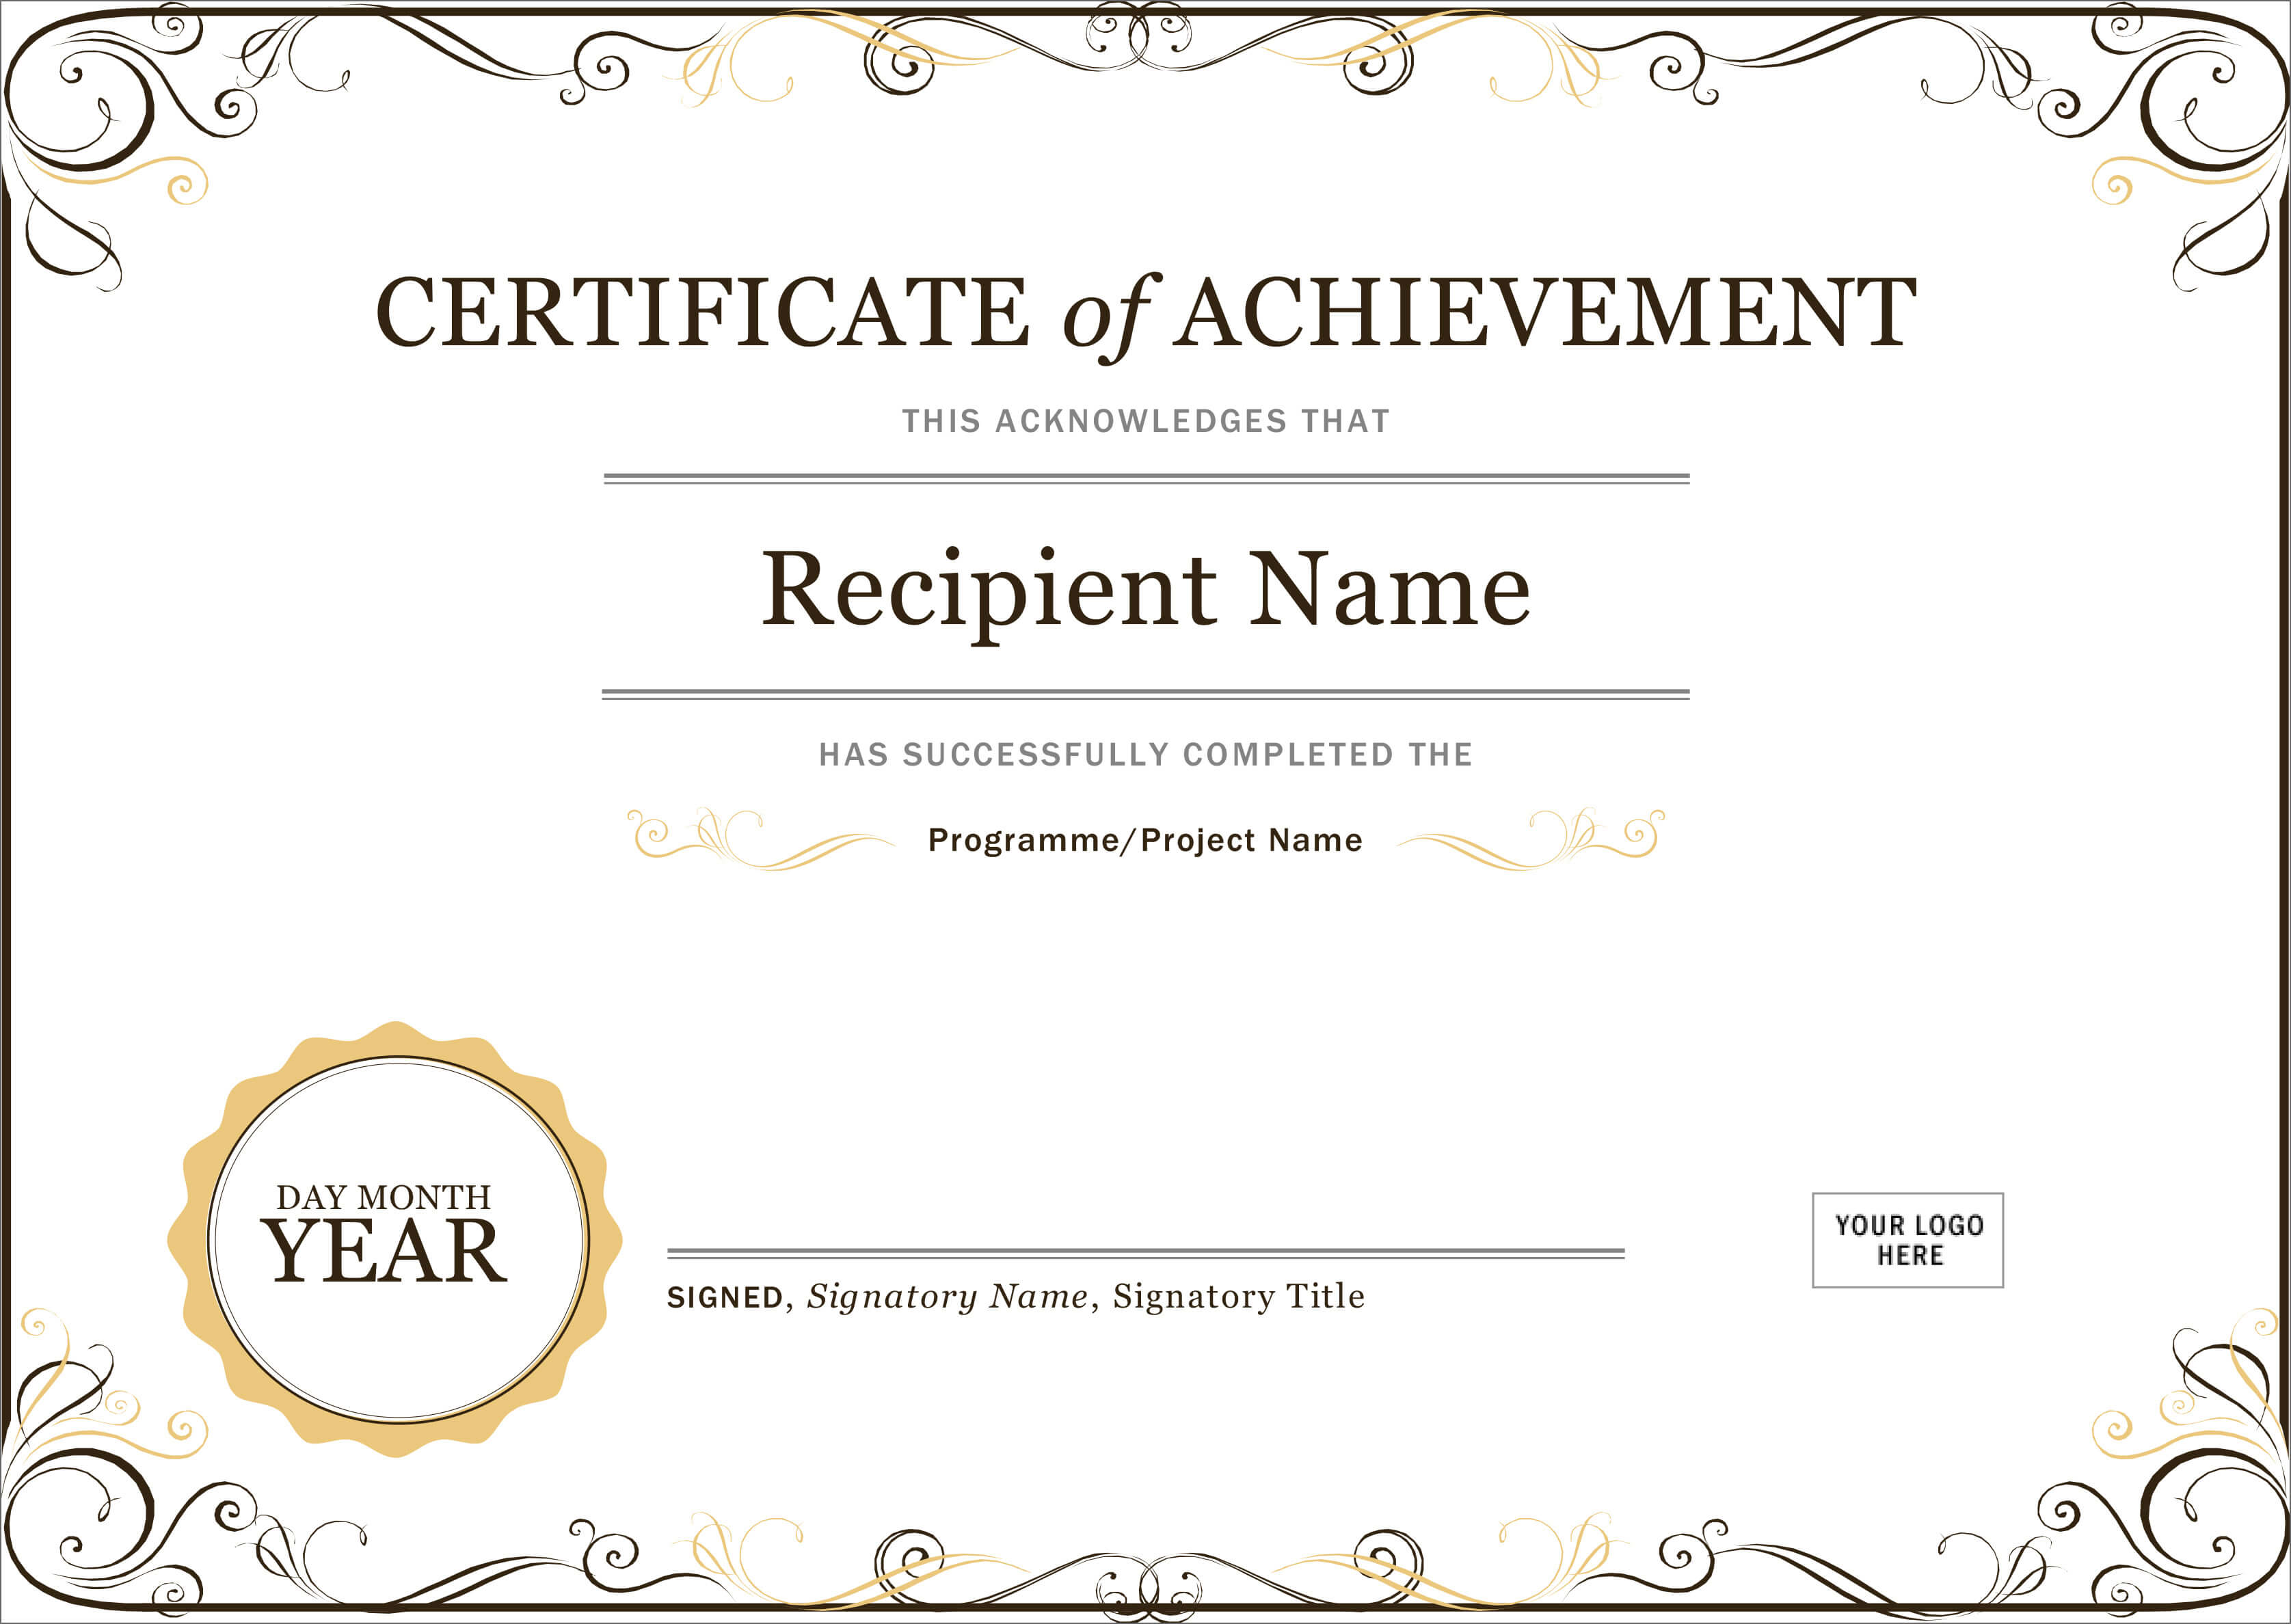 50 Creative Blank Certificate Templates In Psd Photoshop within Certificate Of Achievement Template Word